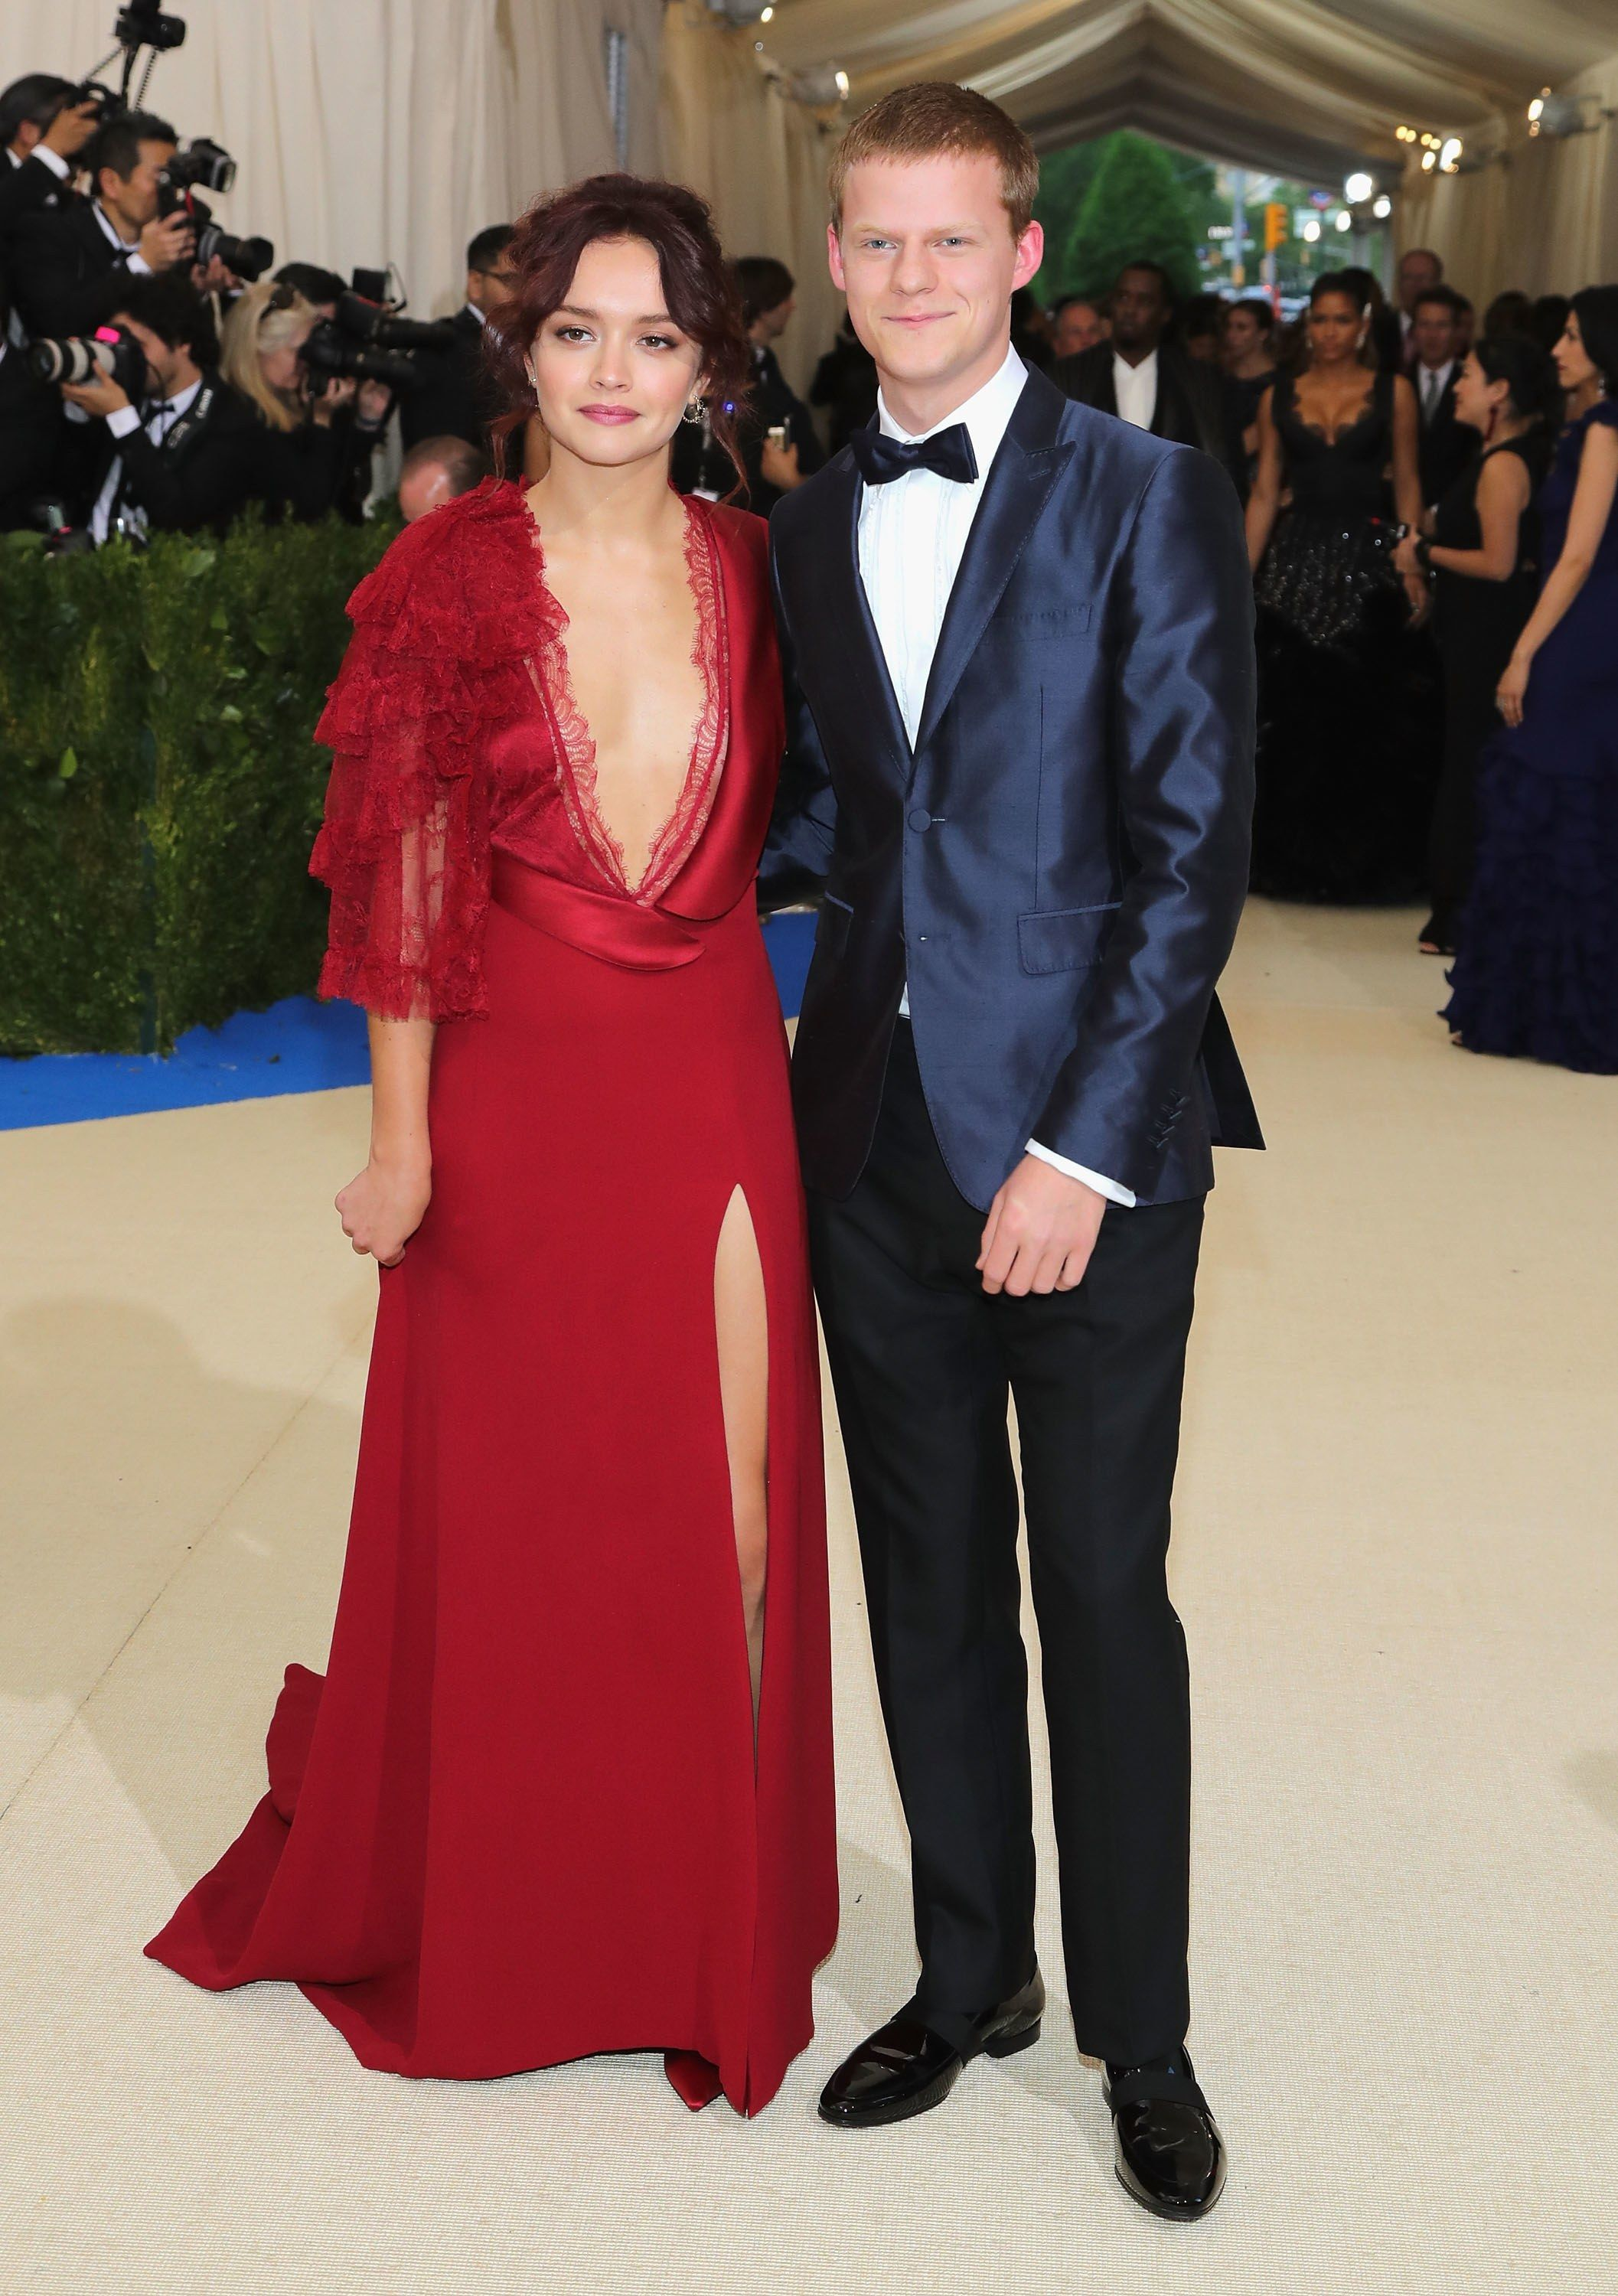 Met Gala 2017 Red Carpet Live All The Celebrity Dresses And Fashion Met Gala Outfits Met Gala Themes Met Gala